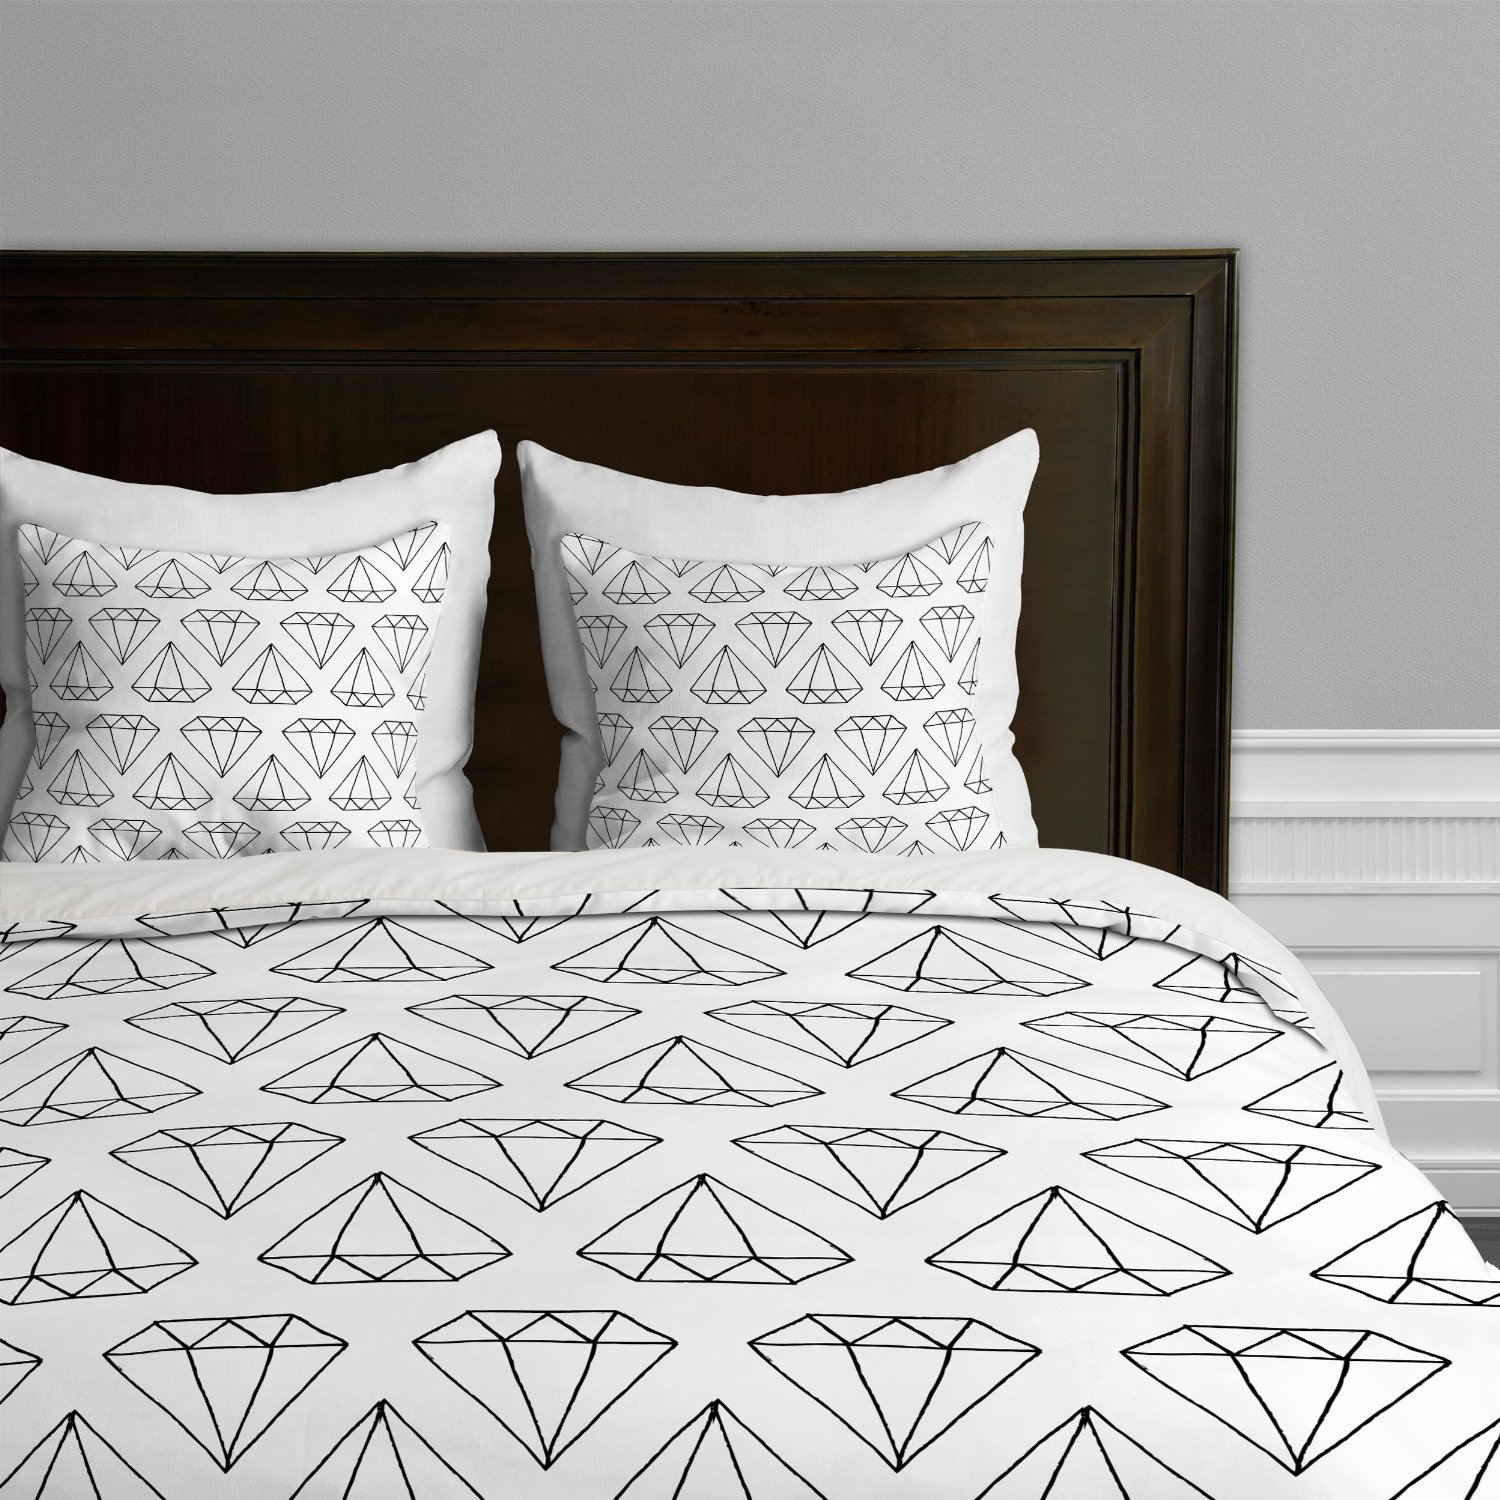 total fab modern black and white geometric themed bedding and  - modern geometric diamond black on white bedding